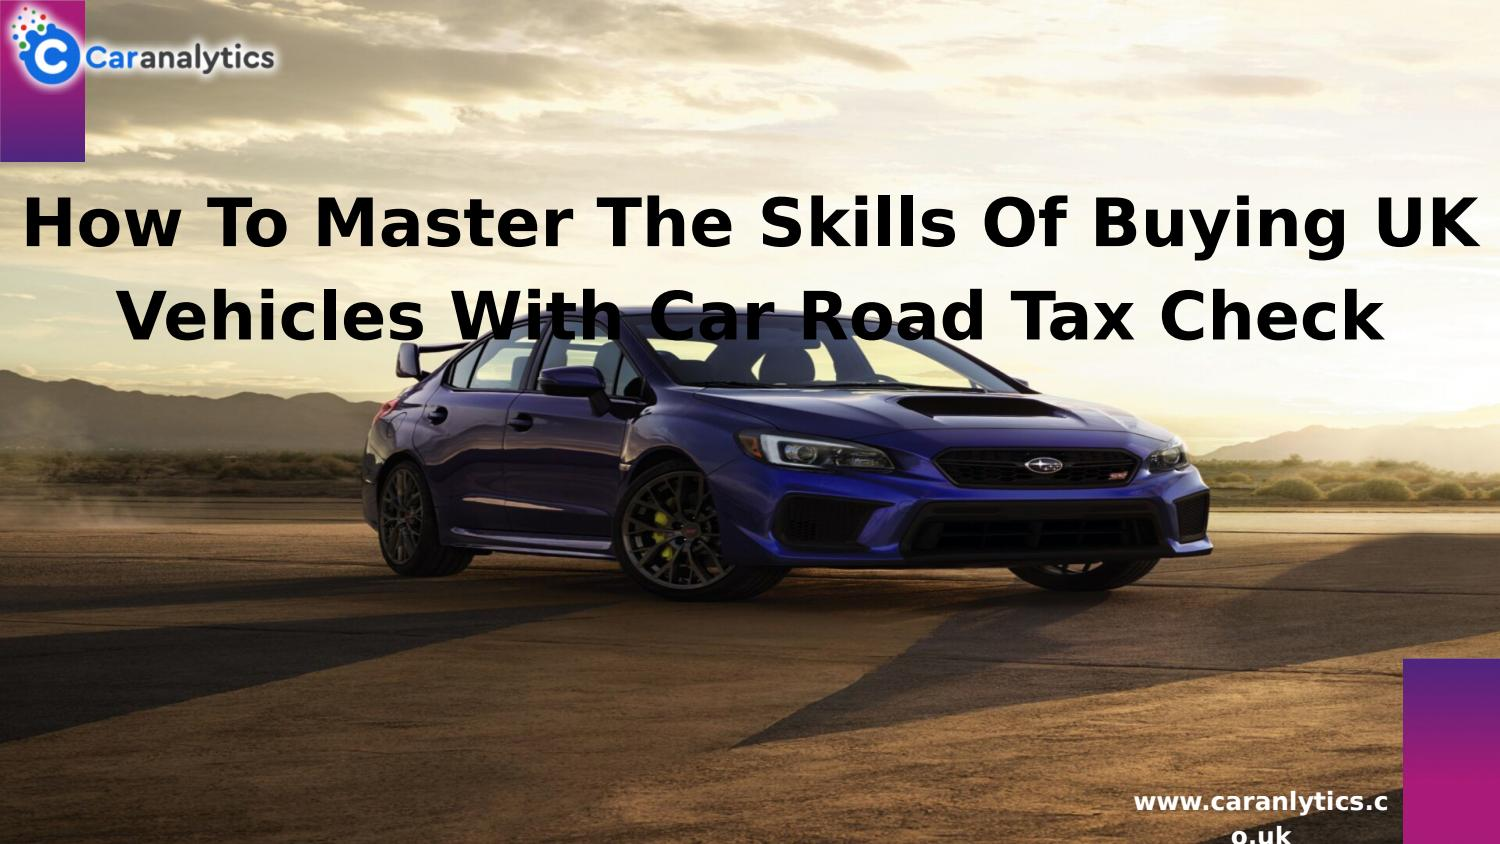 How To Master The Skills Of Buying Uk Vehicles With Car Road Tax Check By Caranalytics Issuu